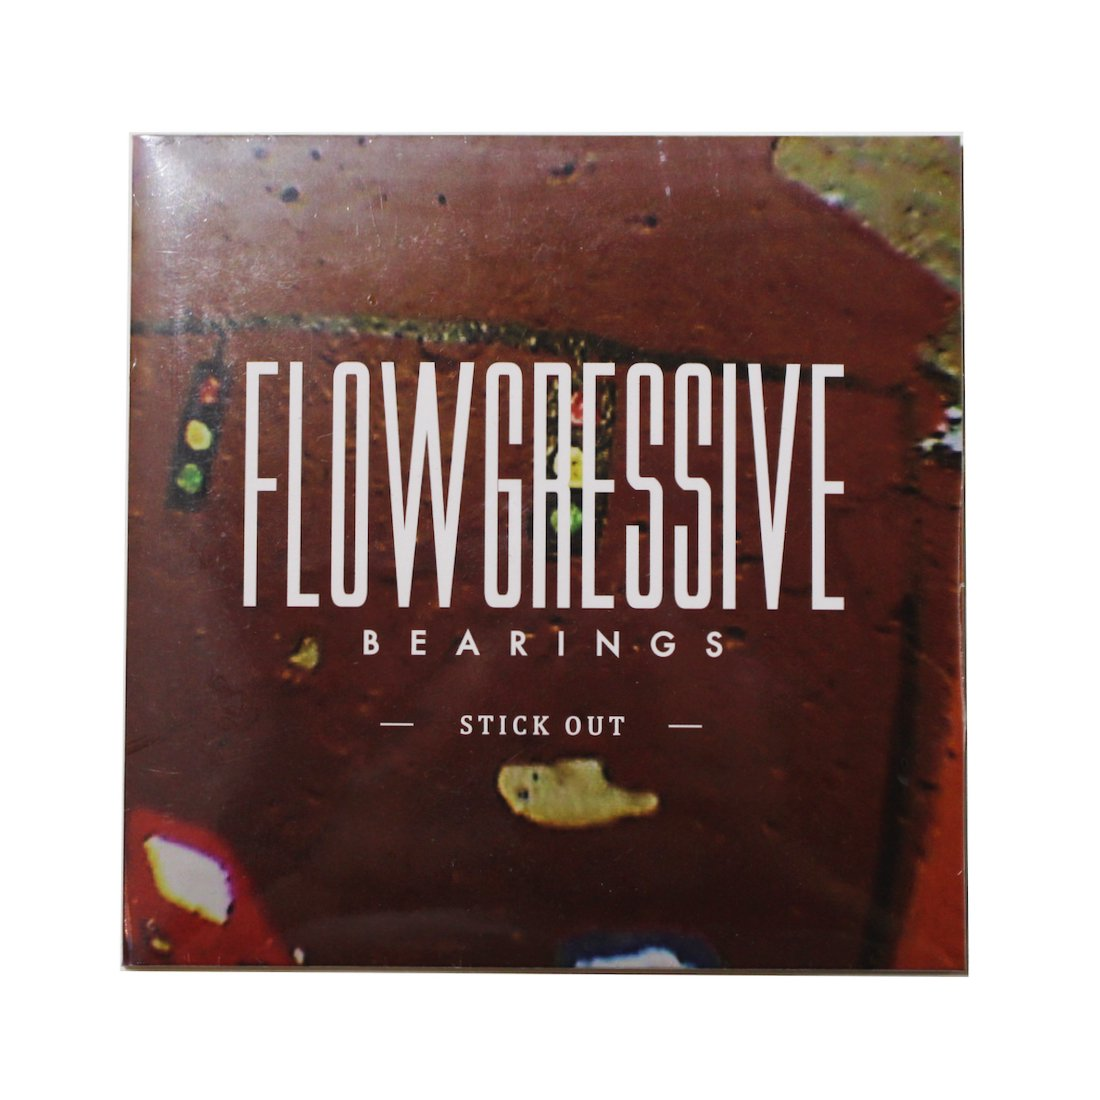 【FLOWGRESSIVE】- Stick Out